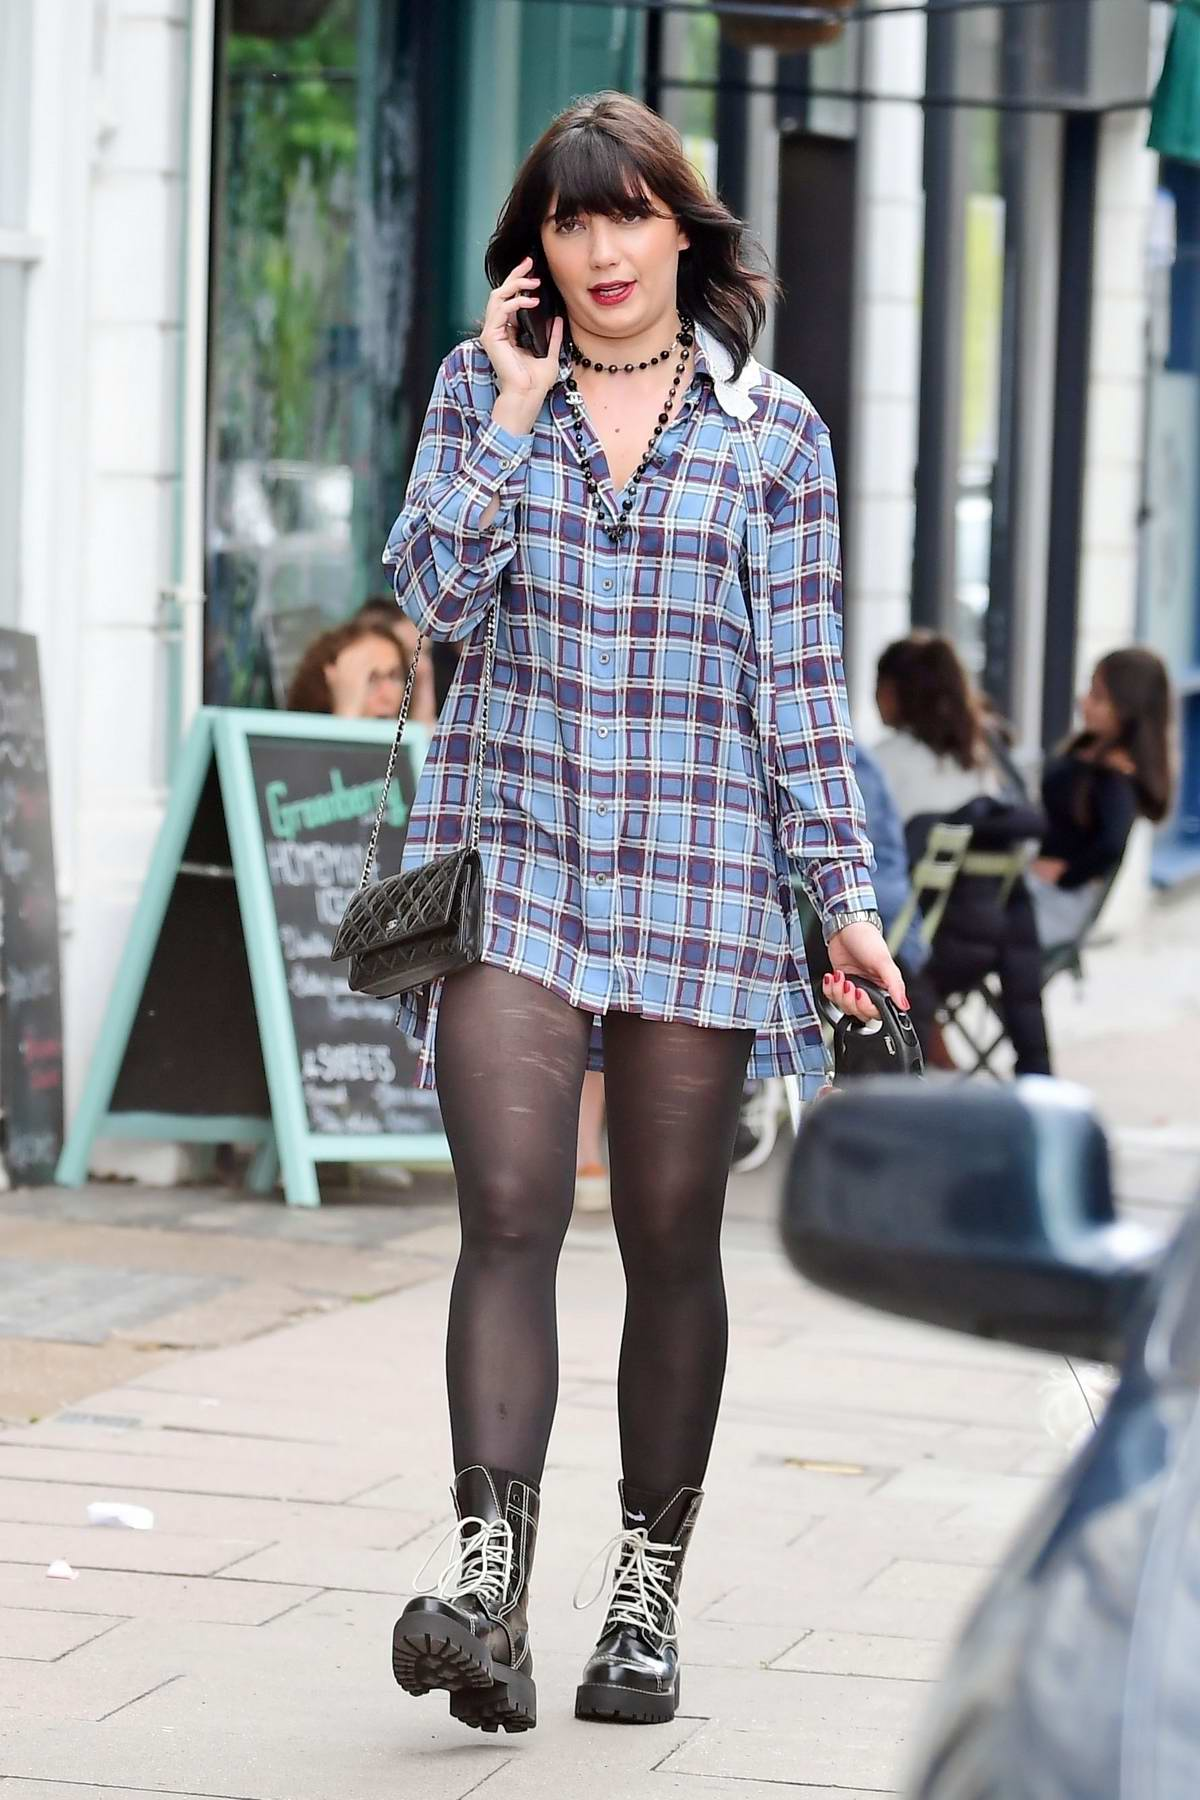 Daisy Lowe looks in good spirits while out walking her dog in Primrose Hill, London, UK